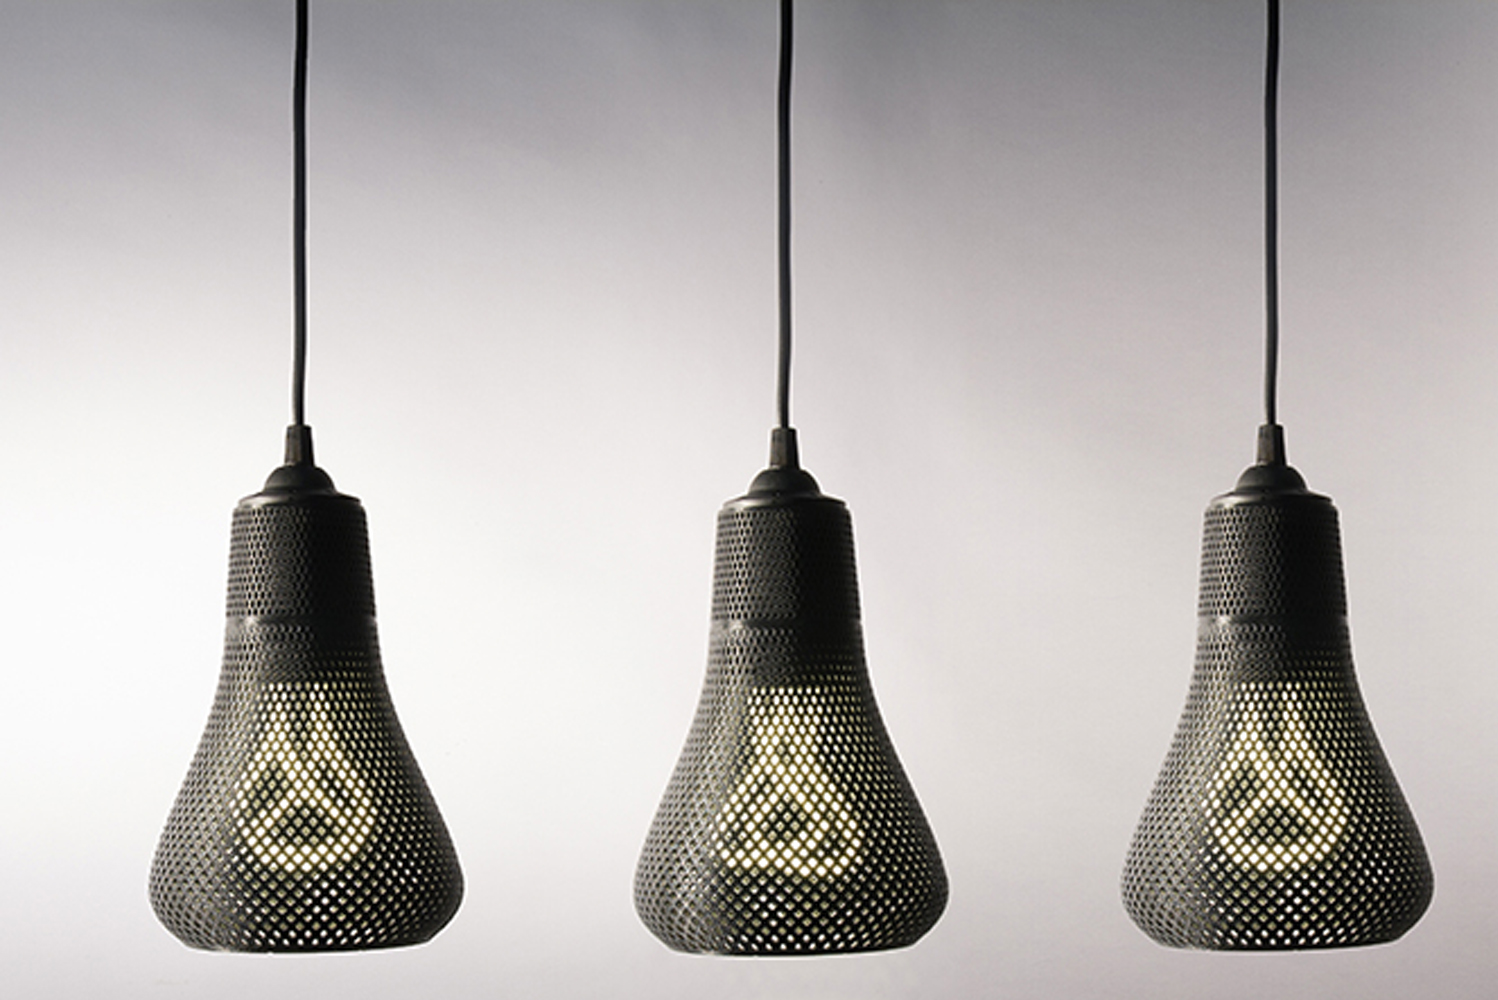 Kayan was specially developed to fit the smaller Plumen models through customized 3D modeling and printing and is effectively Plumen's first step into this new technology.